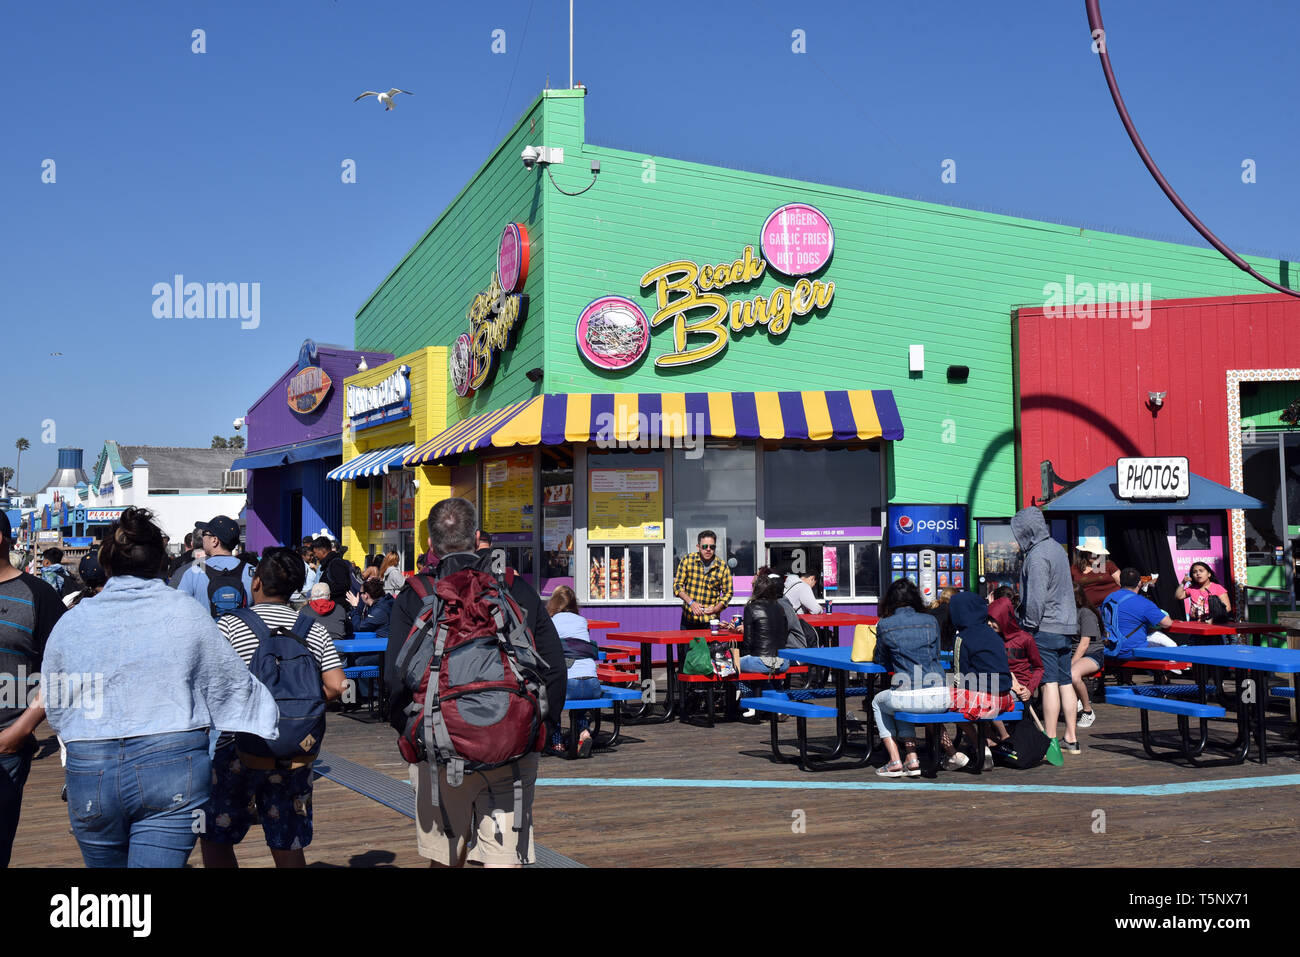 LOS ANGELES, CA/USA  - APRIL 11, 2019:  Cafes, shops and tourists enjoying the Santa Monica Pier on a summer day - Stock Image